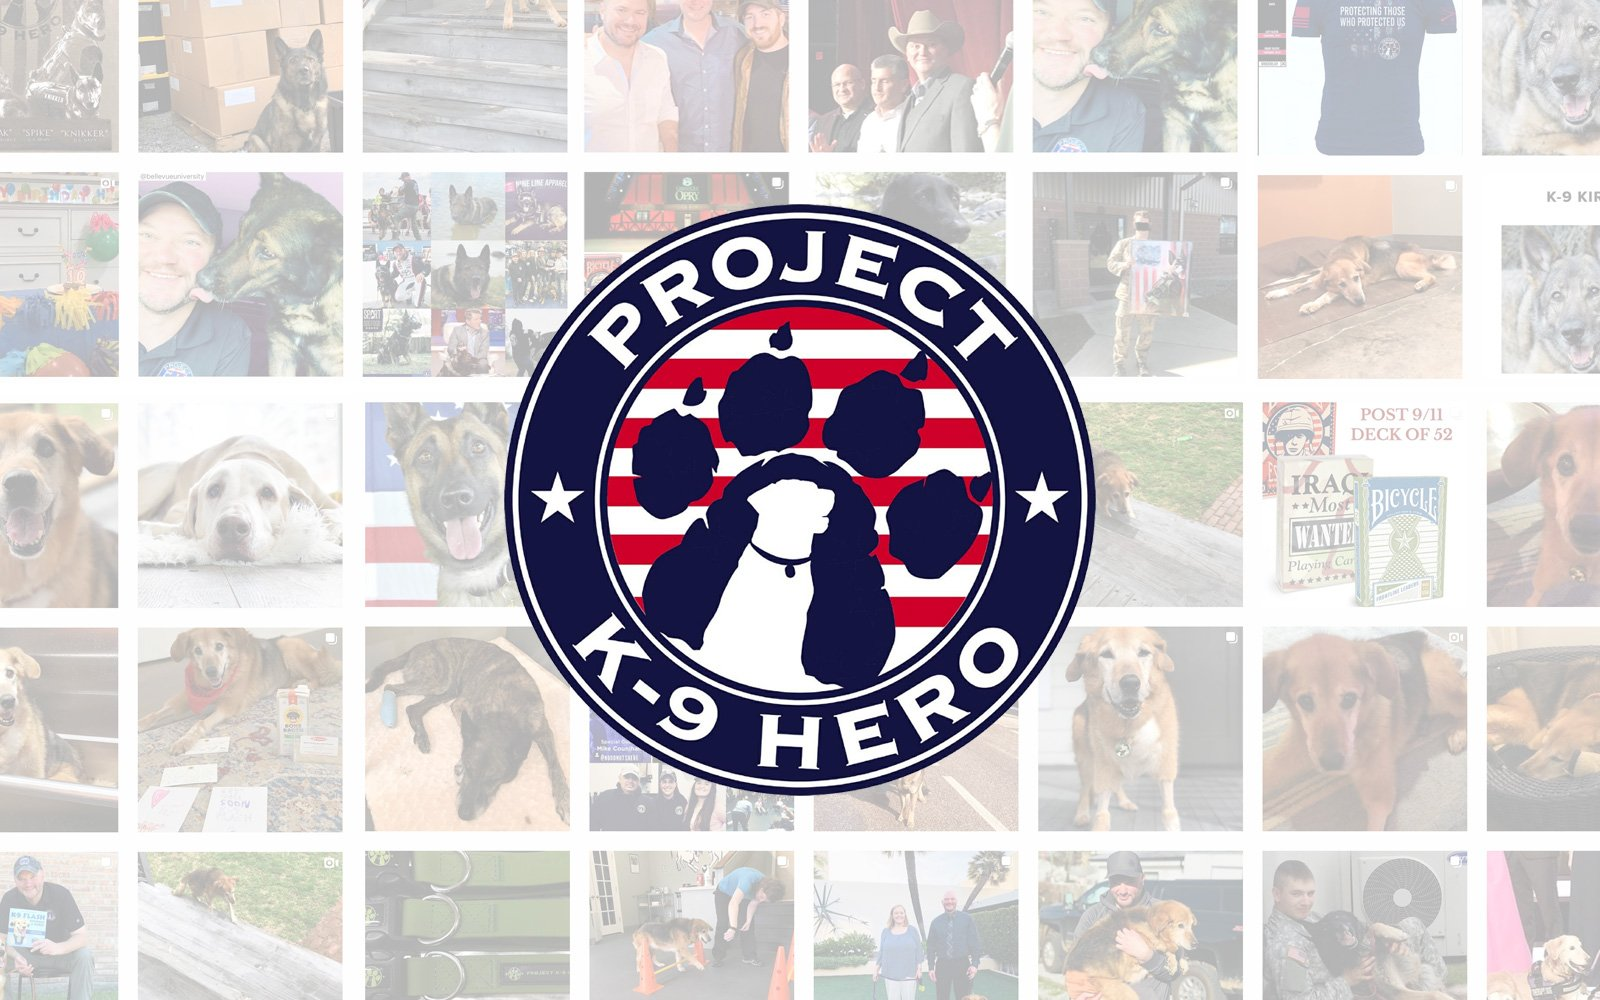 Project K9 Hero partners with Brutus Broth